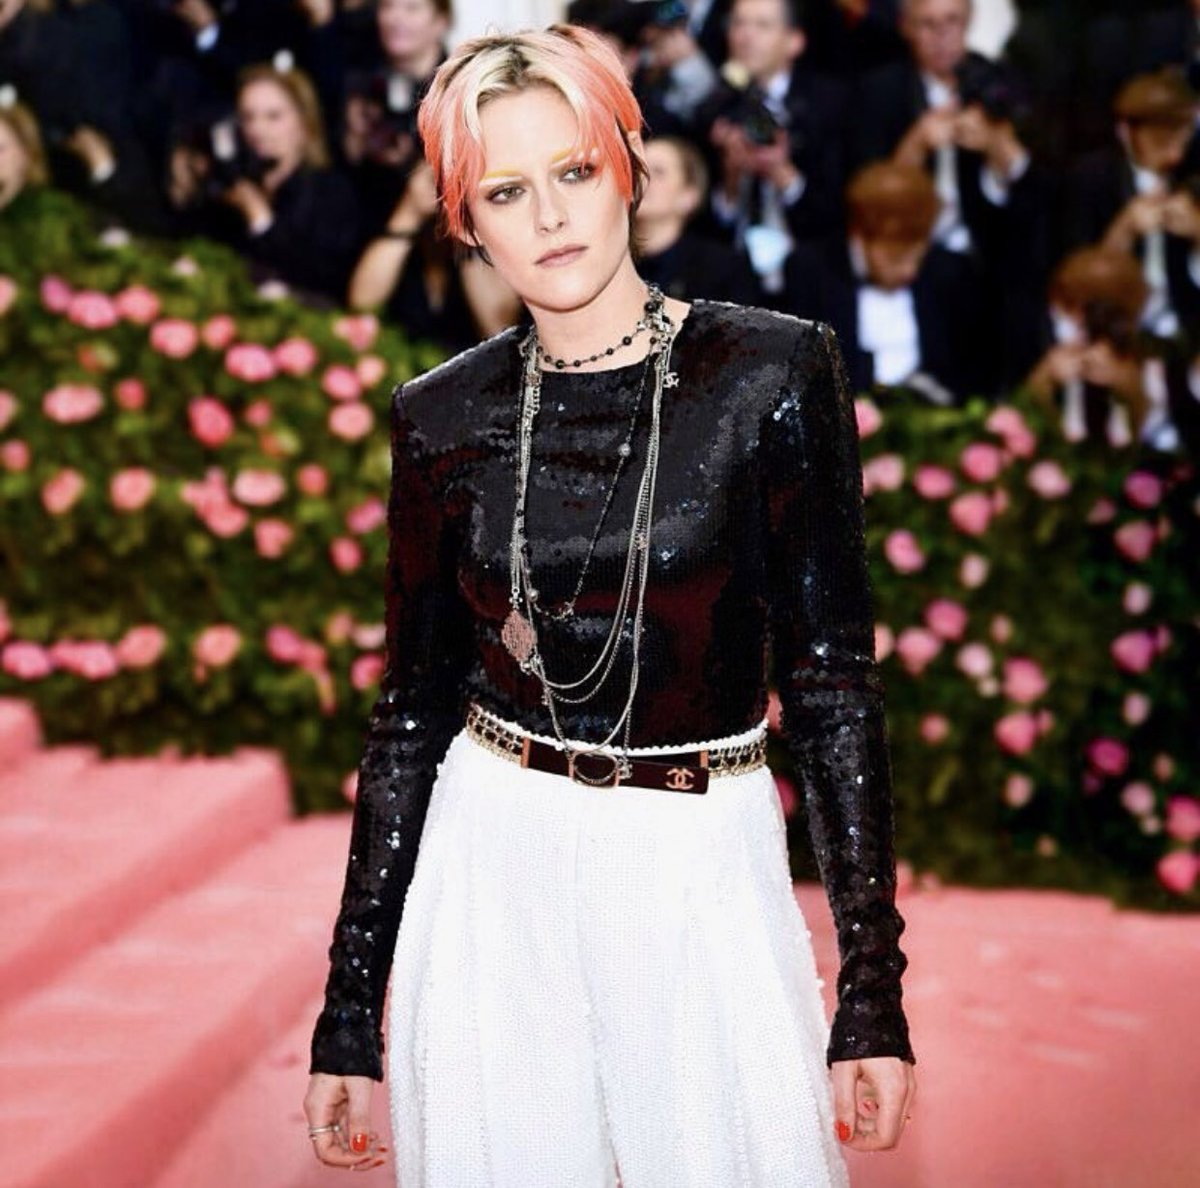 """House ambassador Kristen Stewart chose an entirely sequinned look from the #CHANELFallWinter 2019/20 collection to attend this year's #MetGala, the Costume Institute's annual benefit in New York. #CHANEL #KristenStewart""   via ig: chanelofficial  #MetGala"